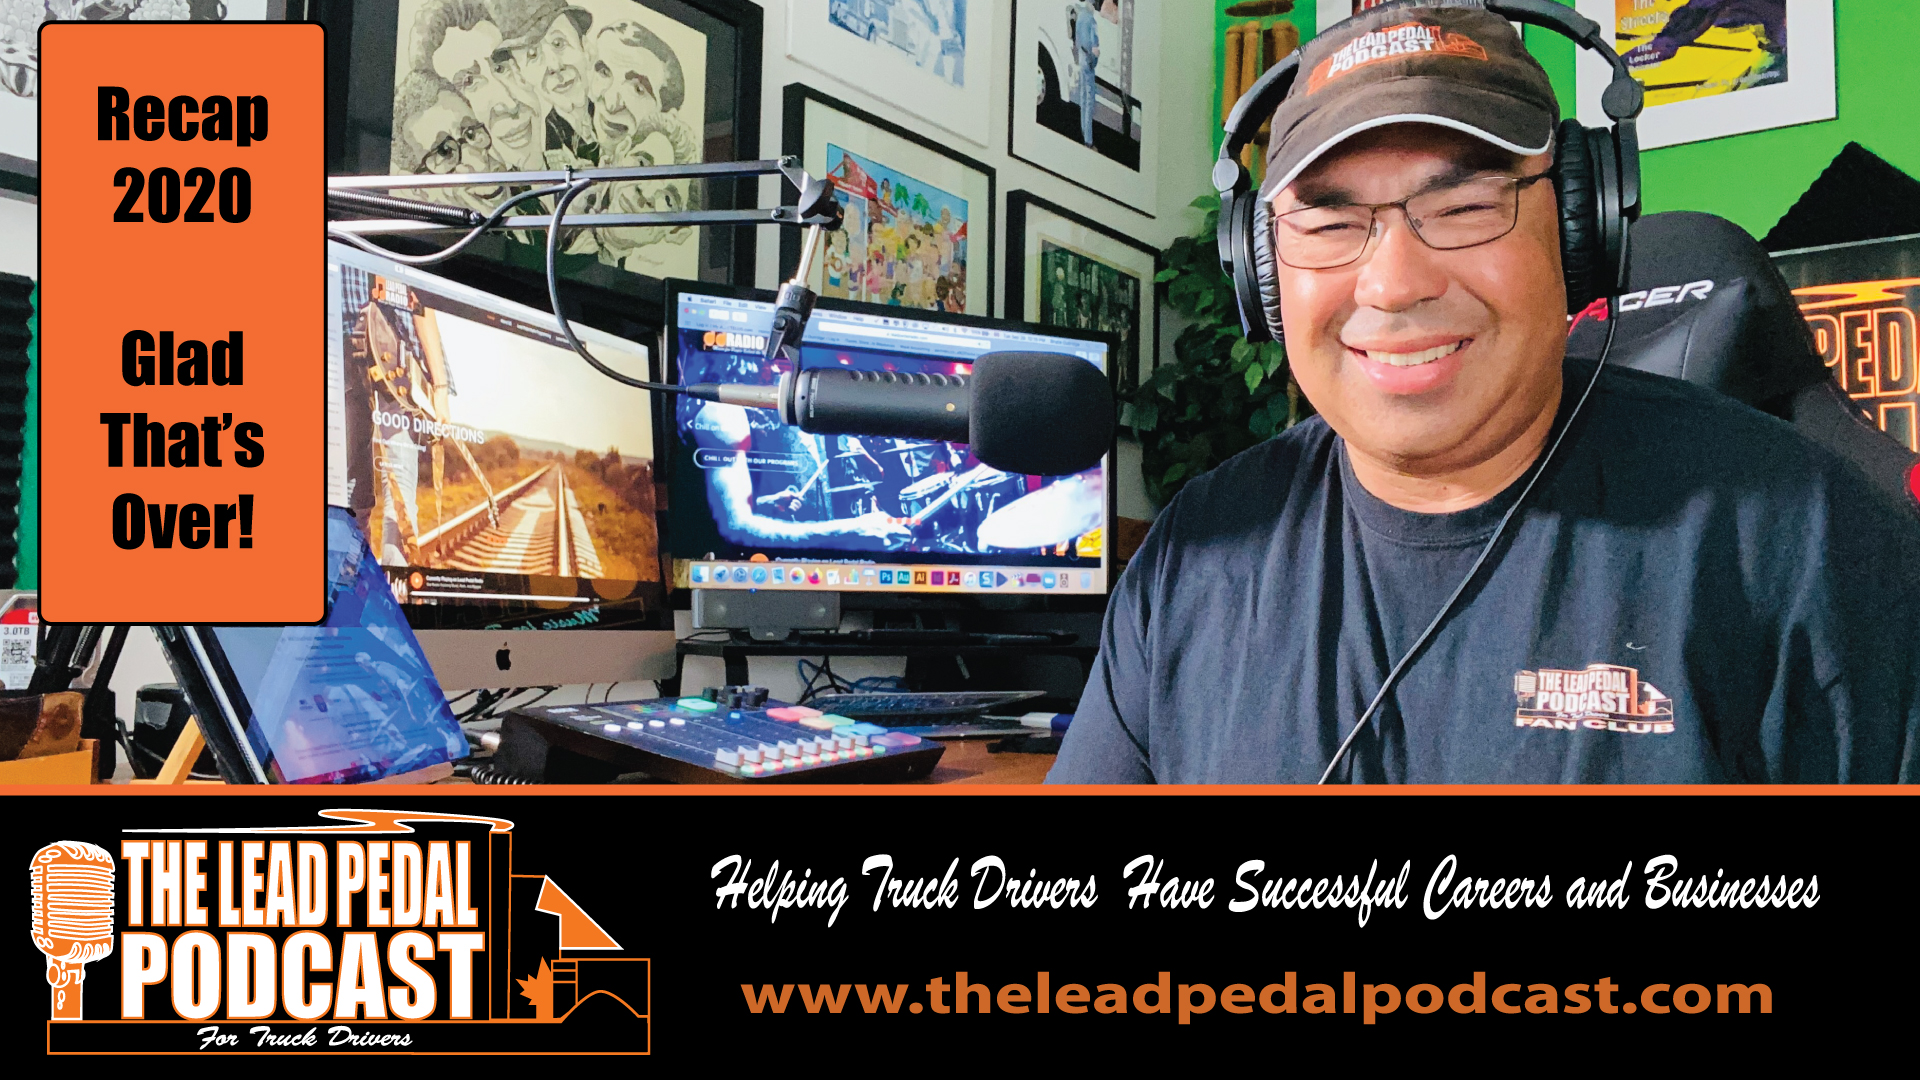 2020 Recap on The Lead Pedal Podcast